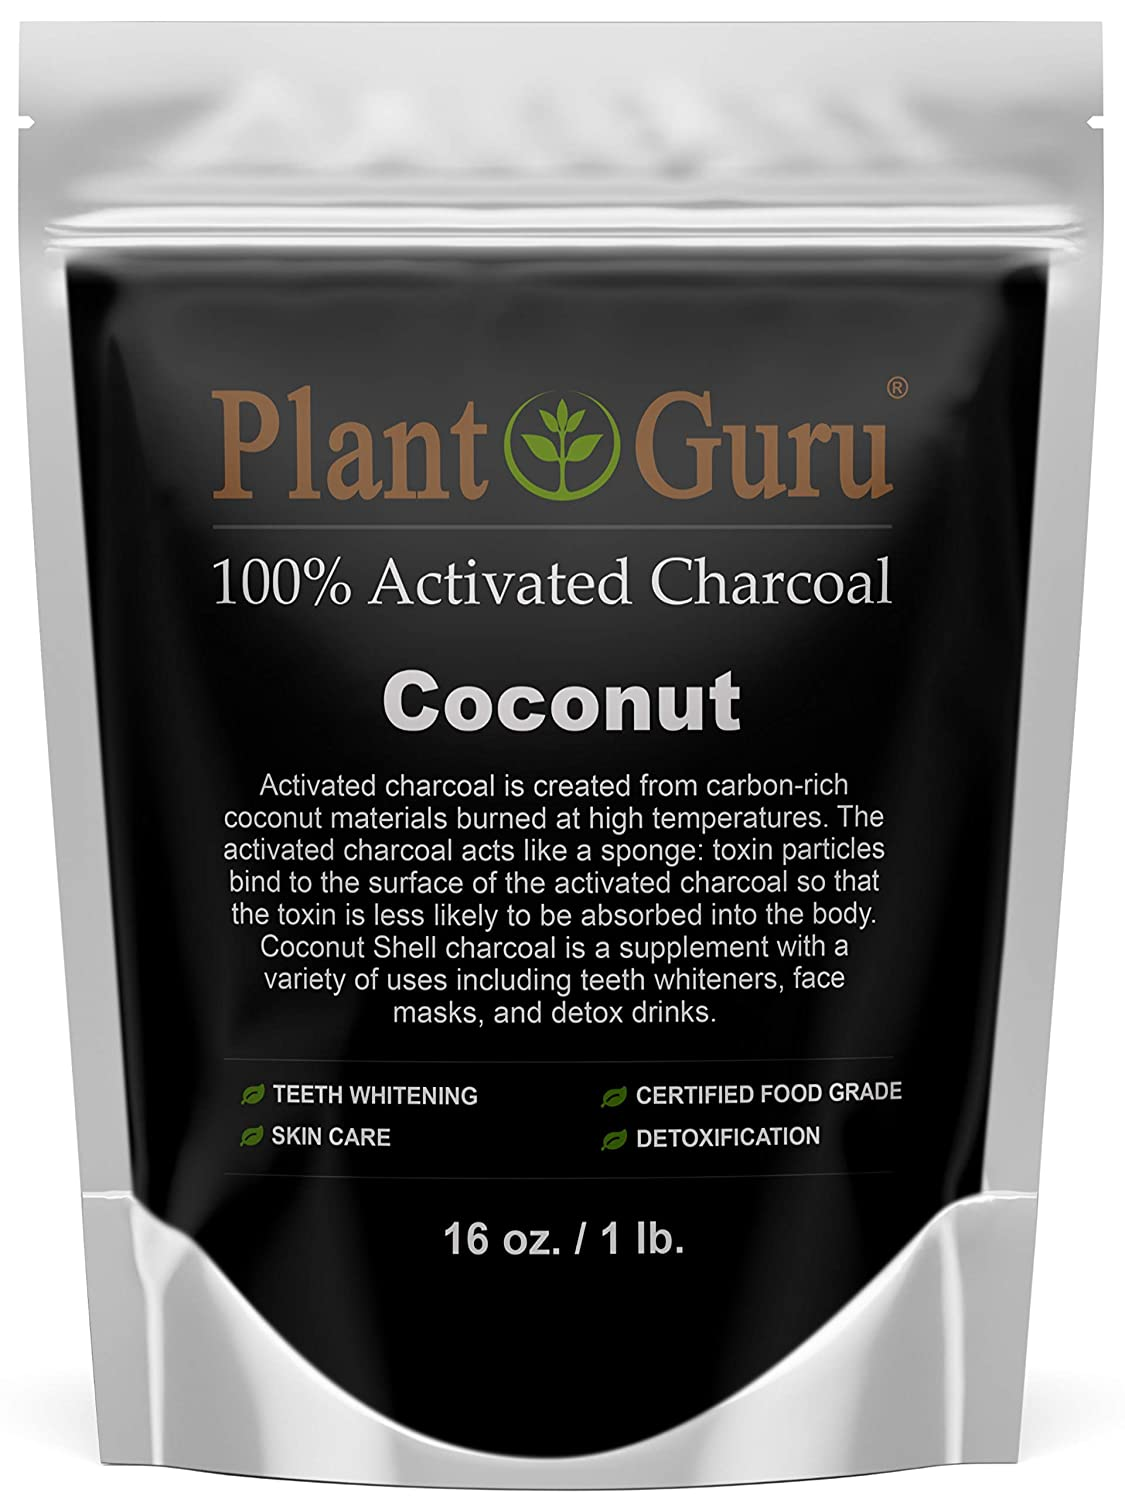 Activated Charcoal Powder 1 lb. COCONUT - Food Grade Kosher Non-GMO - Teeth Whitening, Facial Mask and Soap Making. Promotes Natural Detoxification and Helps Digestion